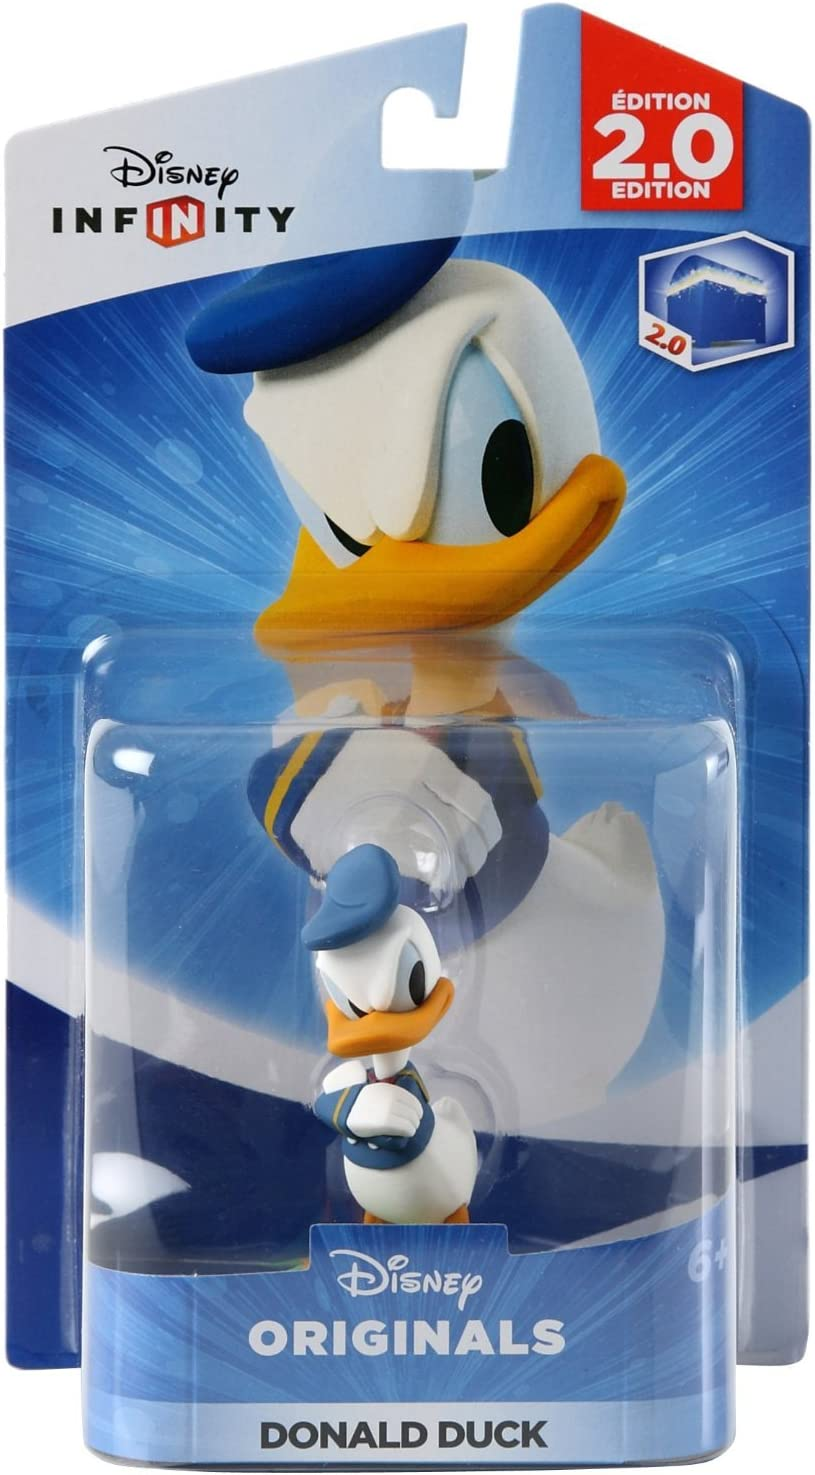 Disney Infinity: Disney Originals (2.0 Edition) Donald Duck Figure   Not Machine Specific by By          Disney Infinity